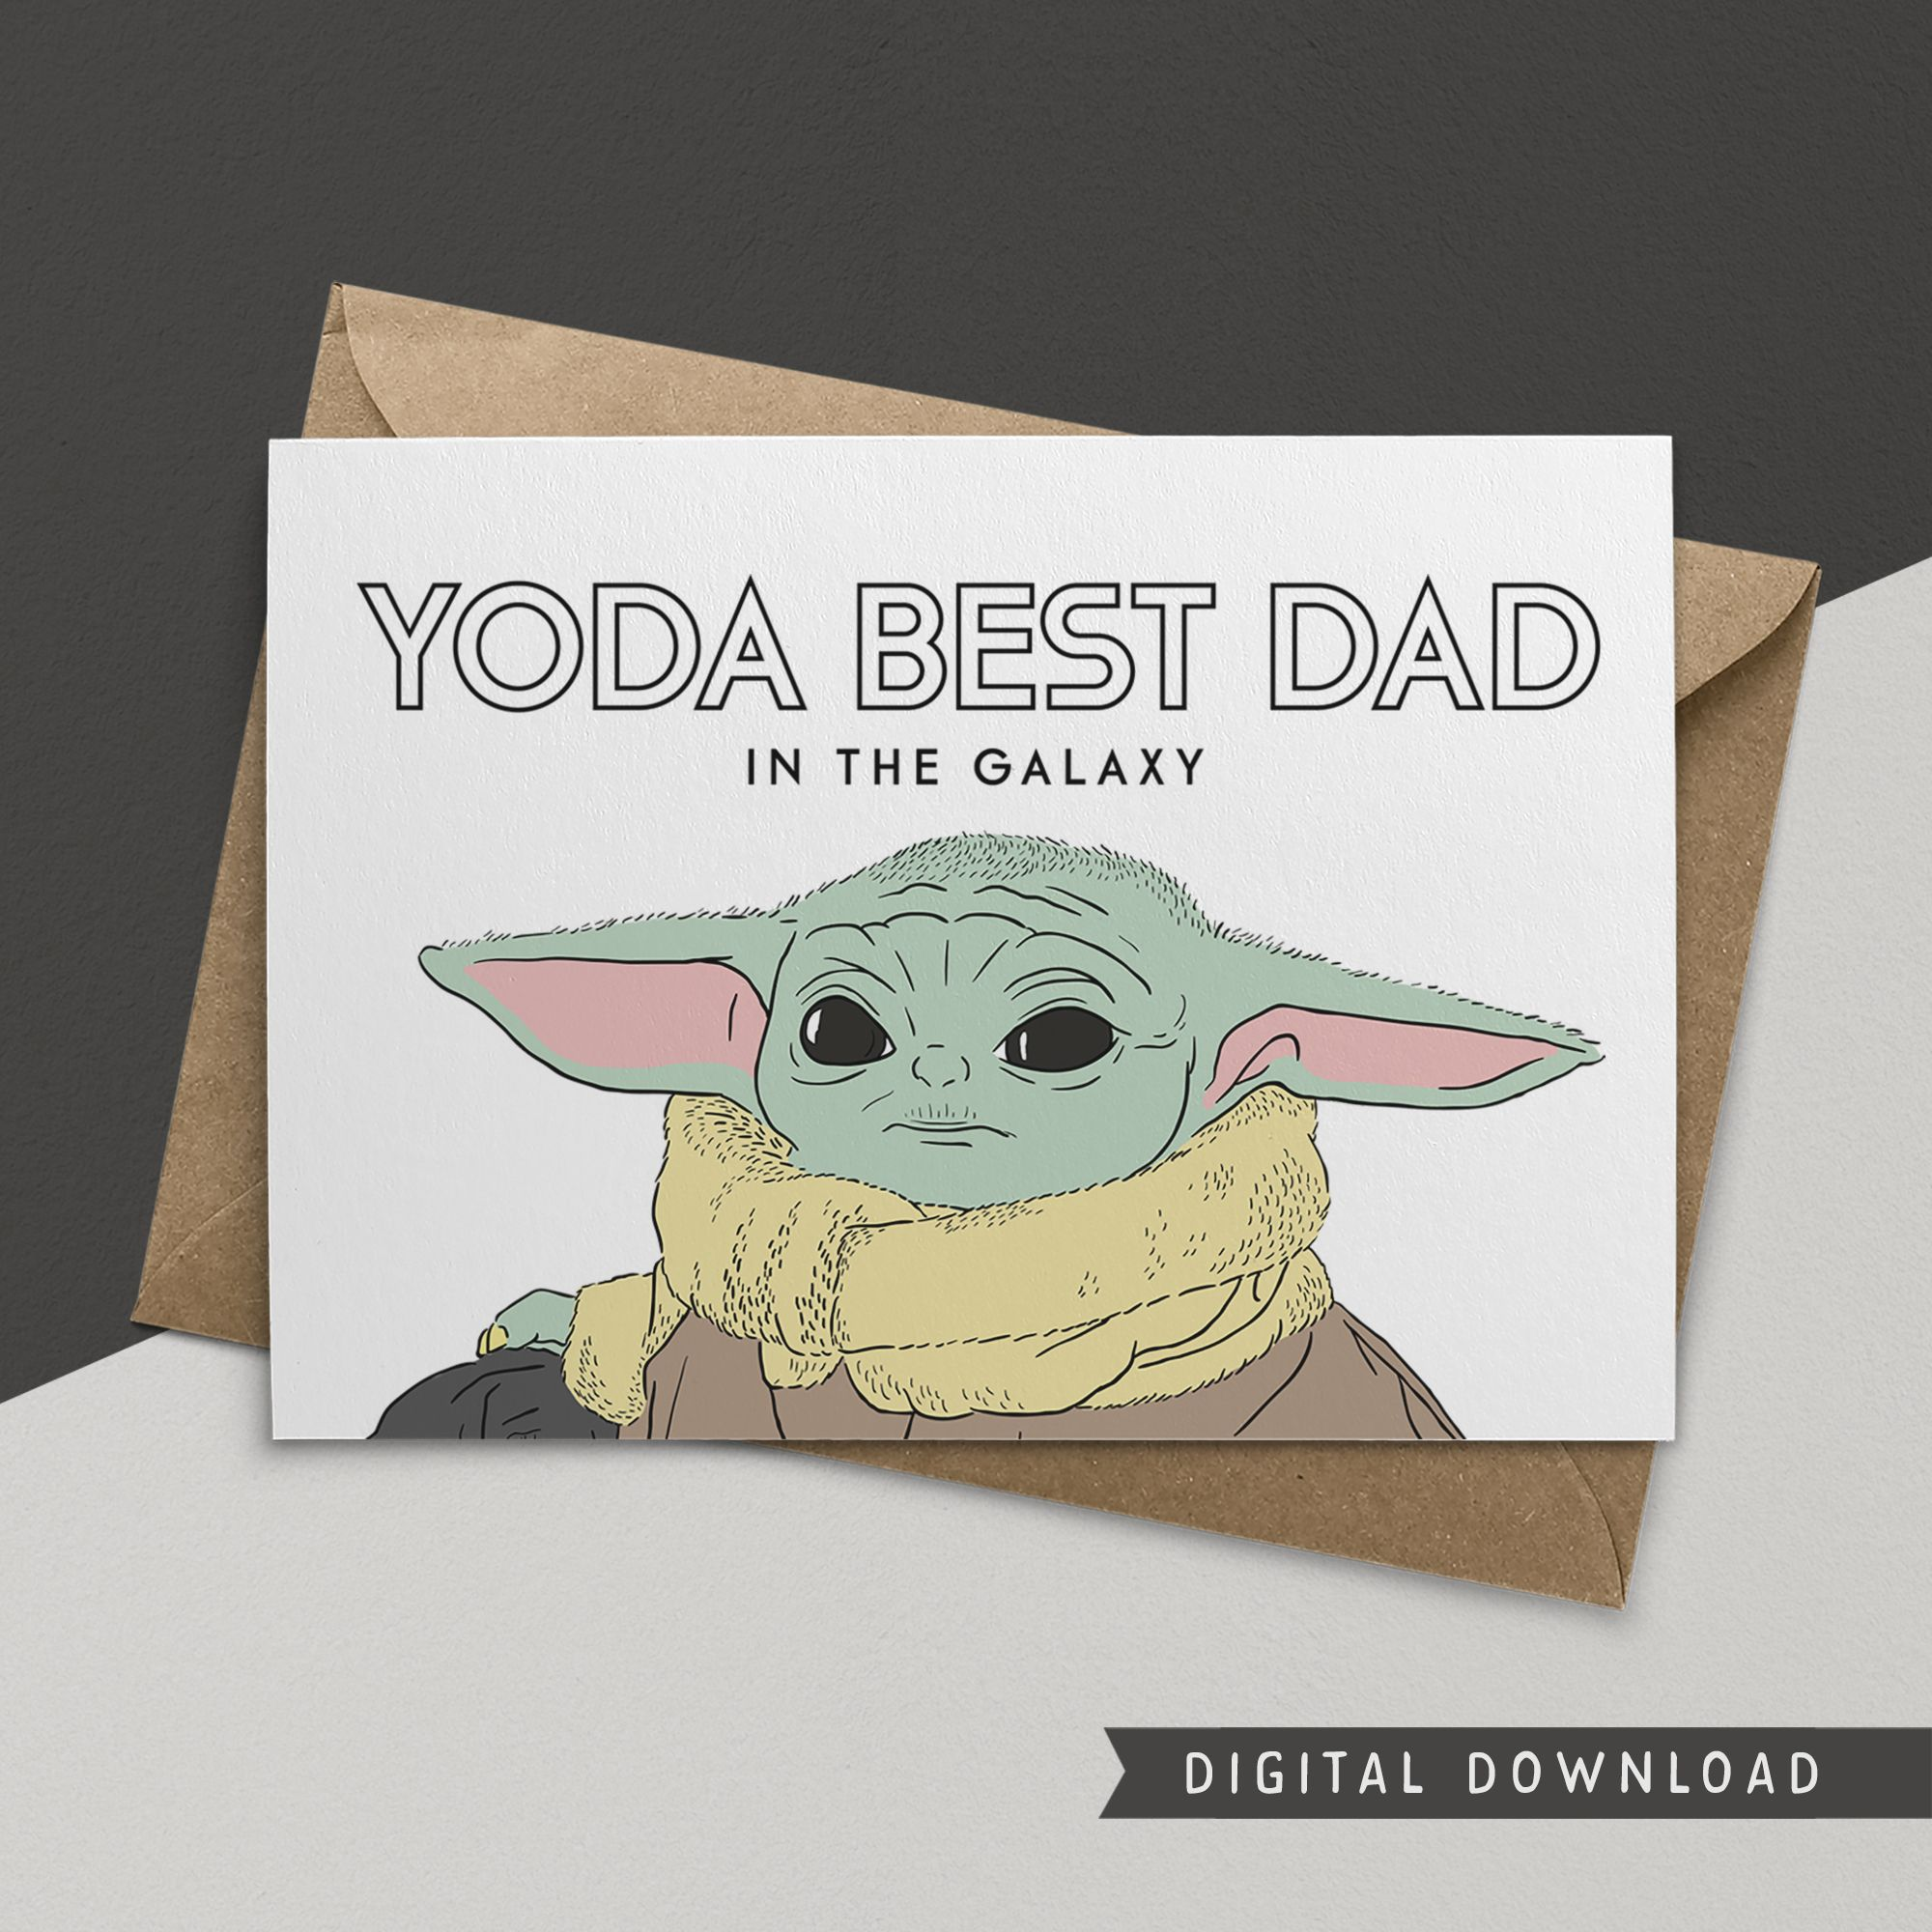 Buy 1 Get 1 Free Father S Day Card Instant Download Yoda Best Dad Funny Greeting Card Happy Dad Day Greeting Cards Card For Dad In 2021 Birthday Card Printable Yoda Card Funny Birthday Cards